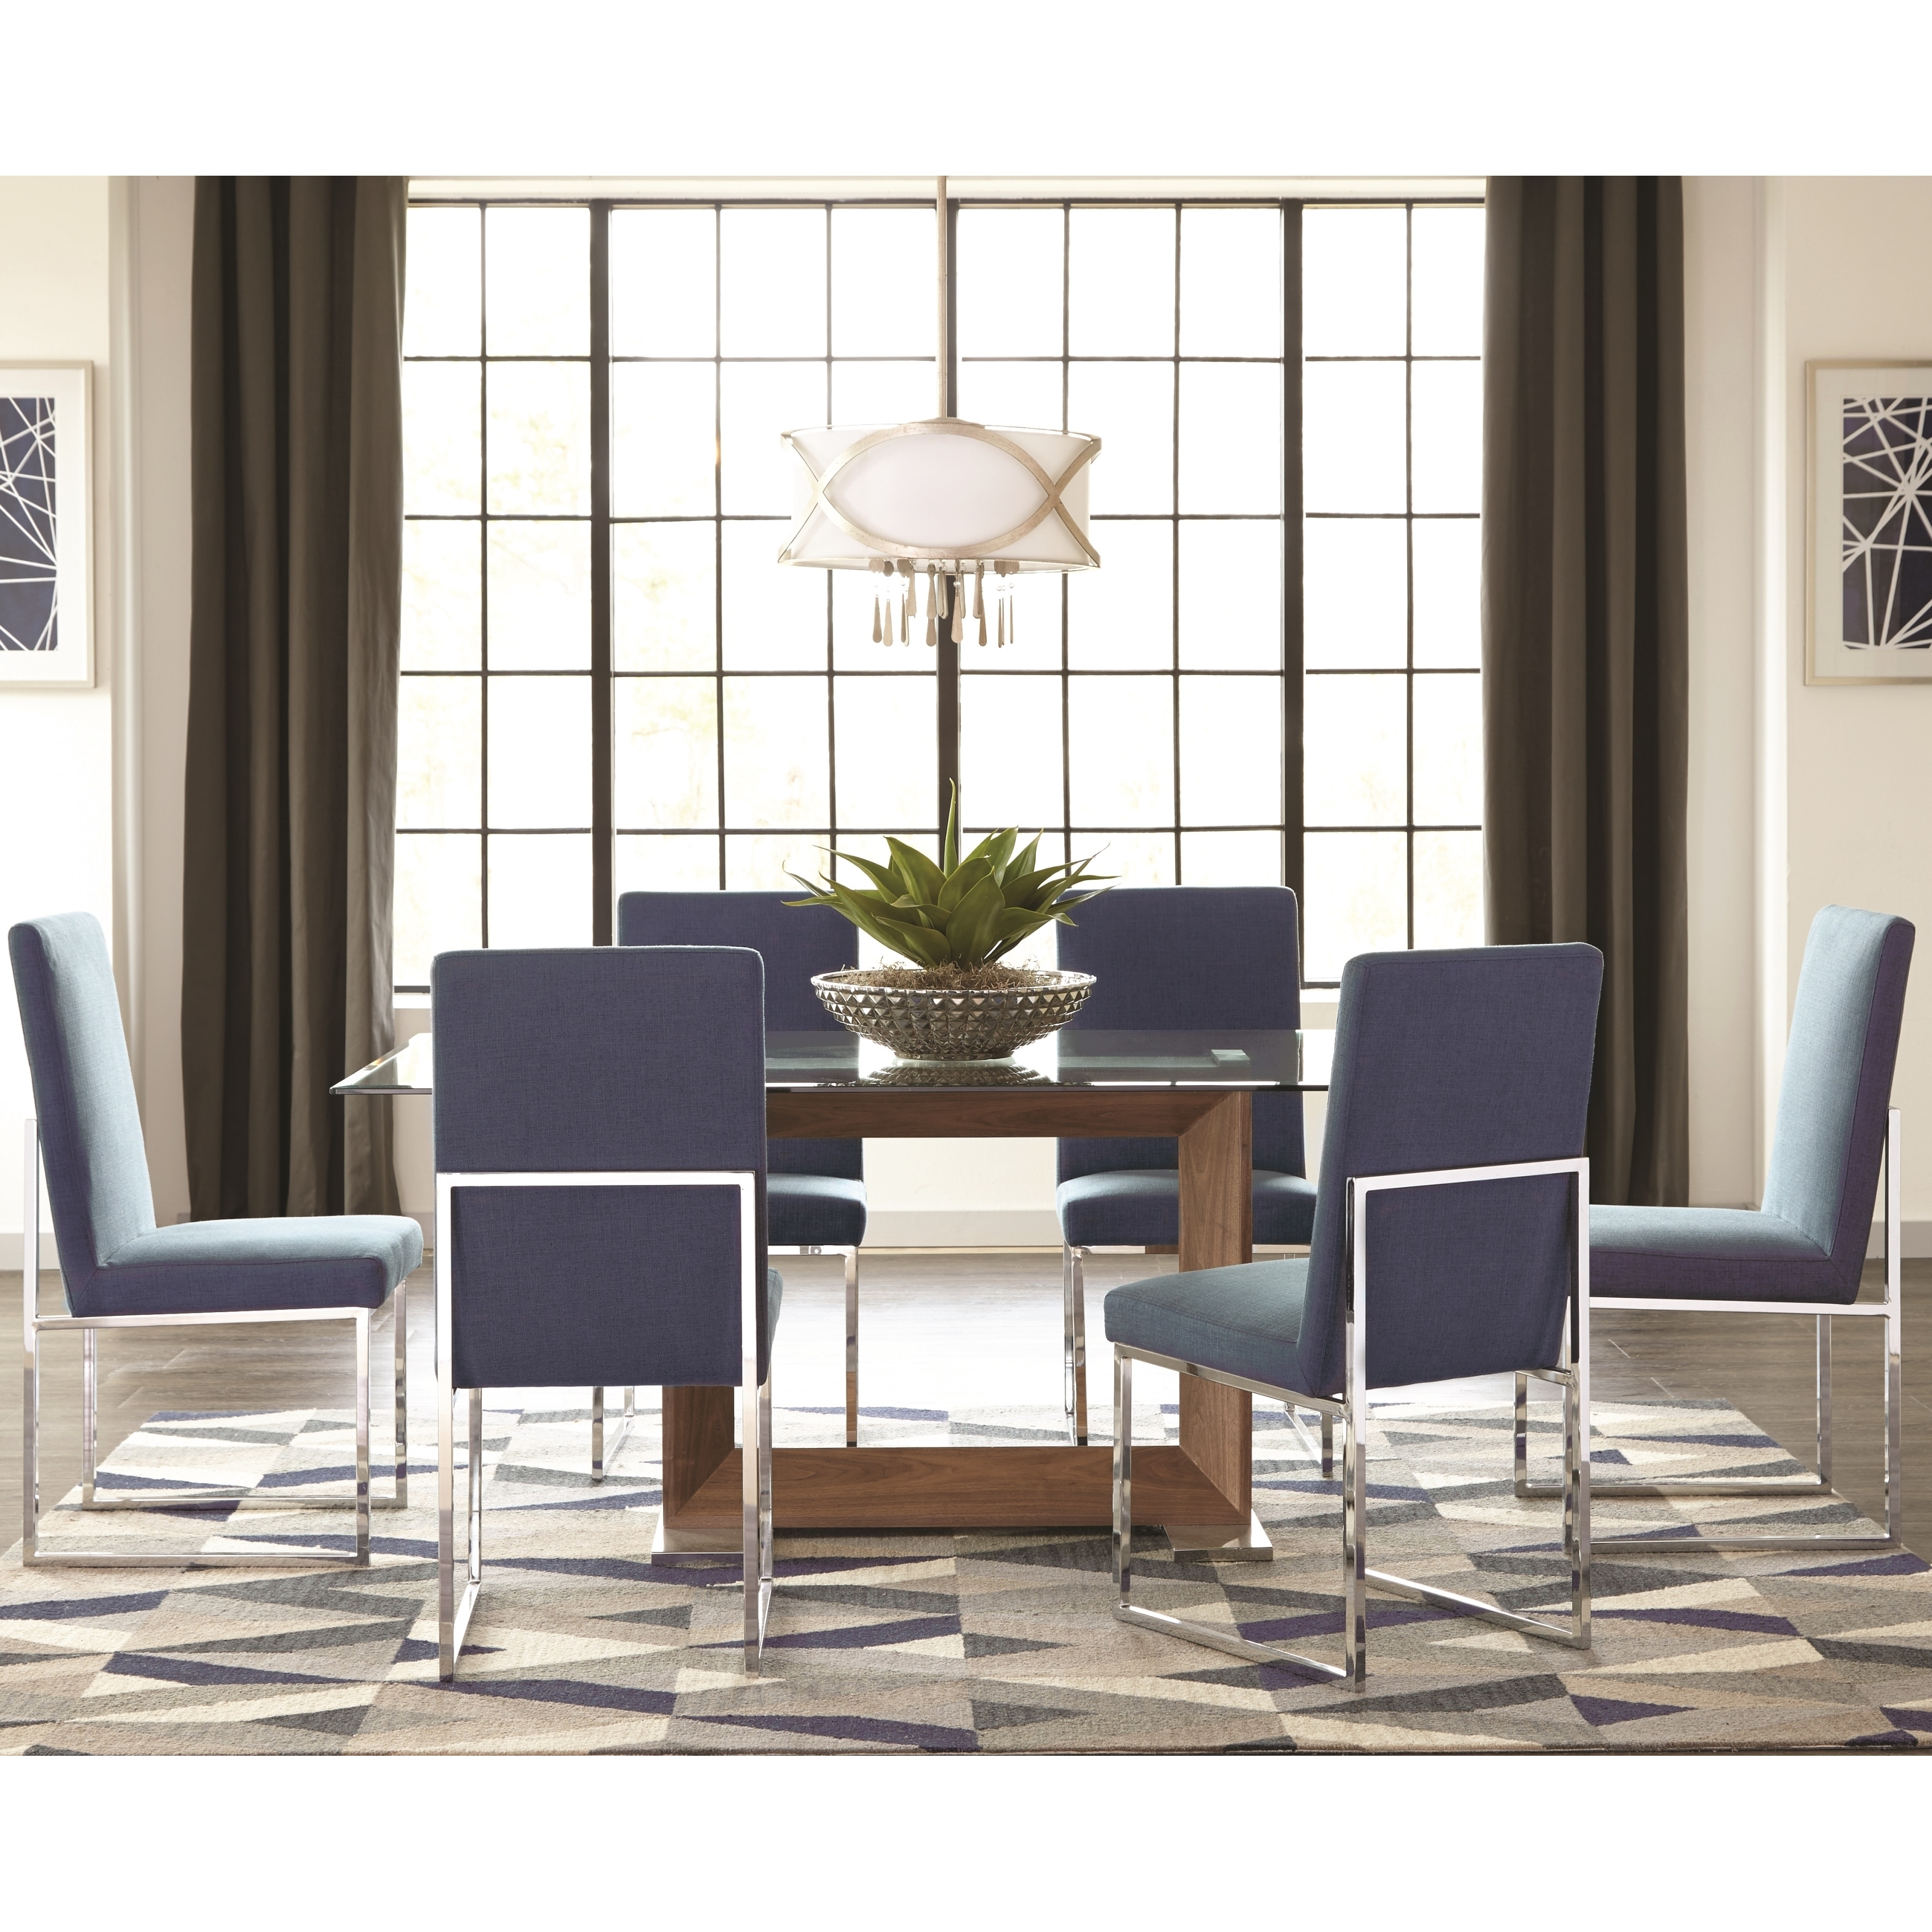 Modern Floating Design Glass Top Dining Set with Blue Chairs